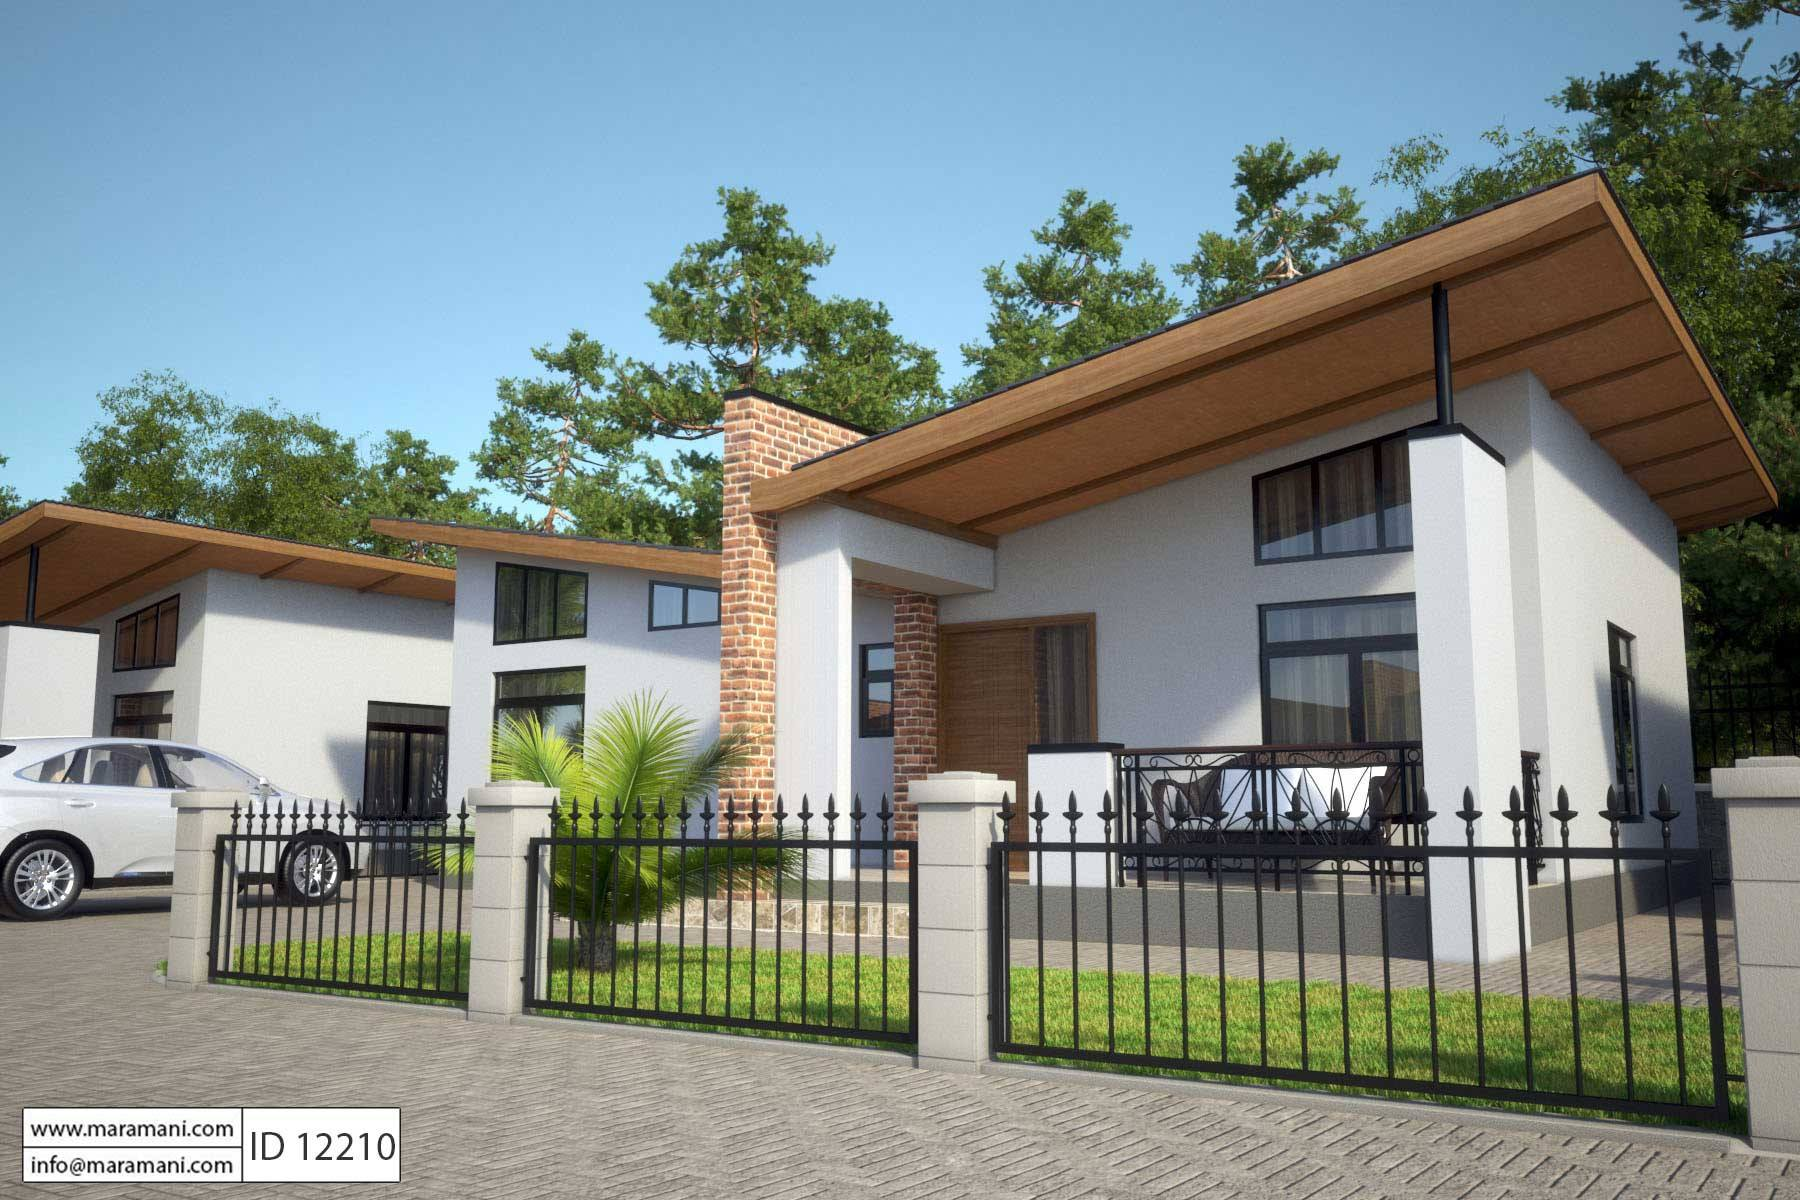 2 bedroom house plan id 12210 house designs by maramani for 2 bedroom homes to build